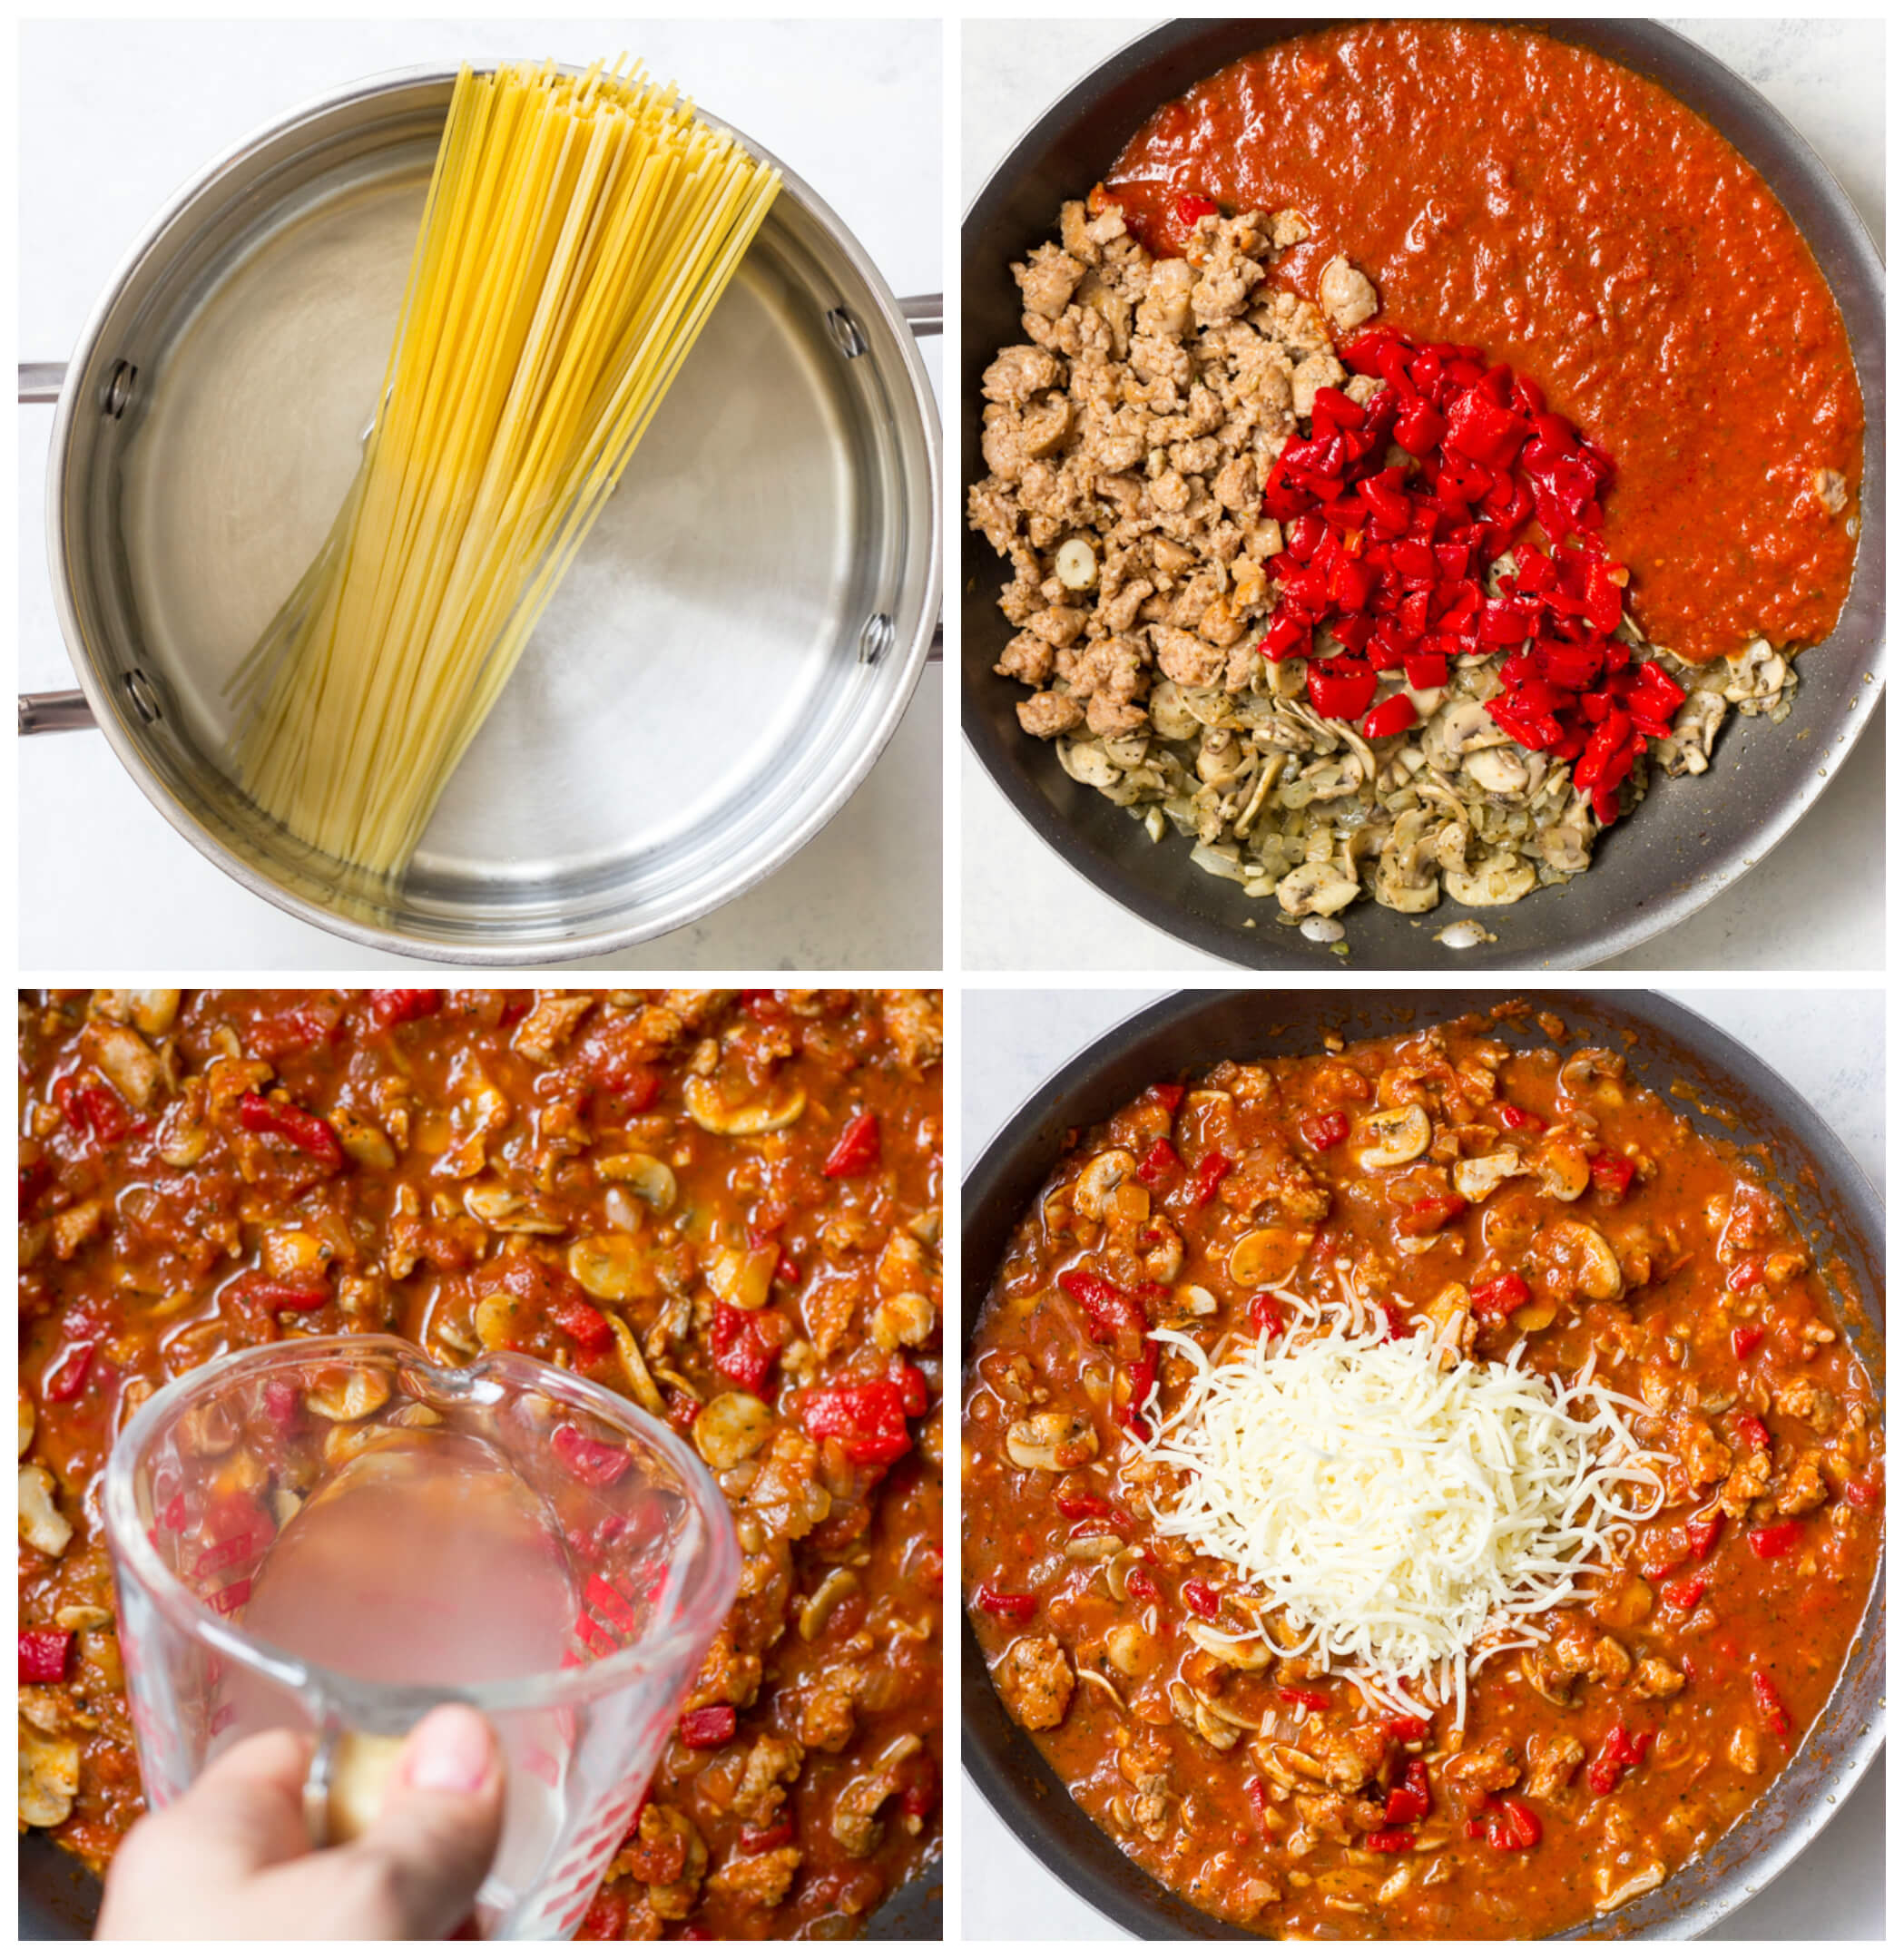 Overheat view of four images showing how to make spaghetti sauce